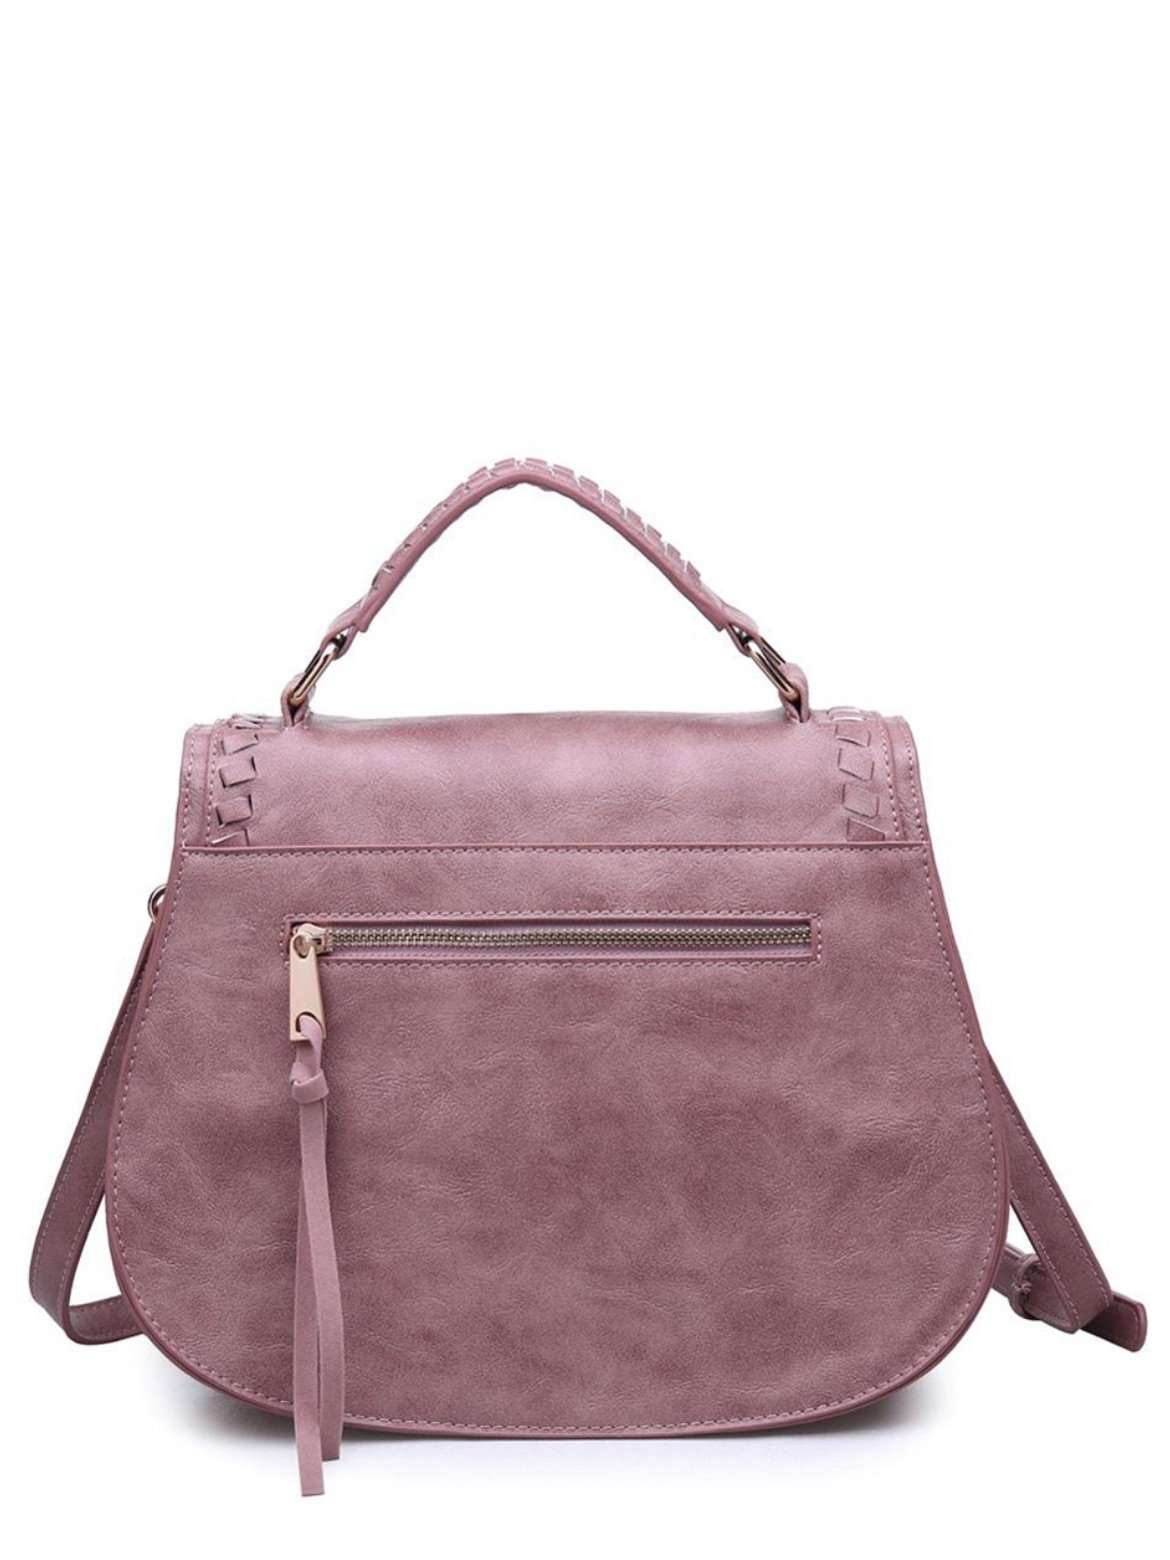 Saddle Stitch Bag - Pinks